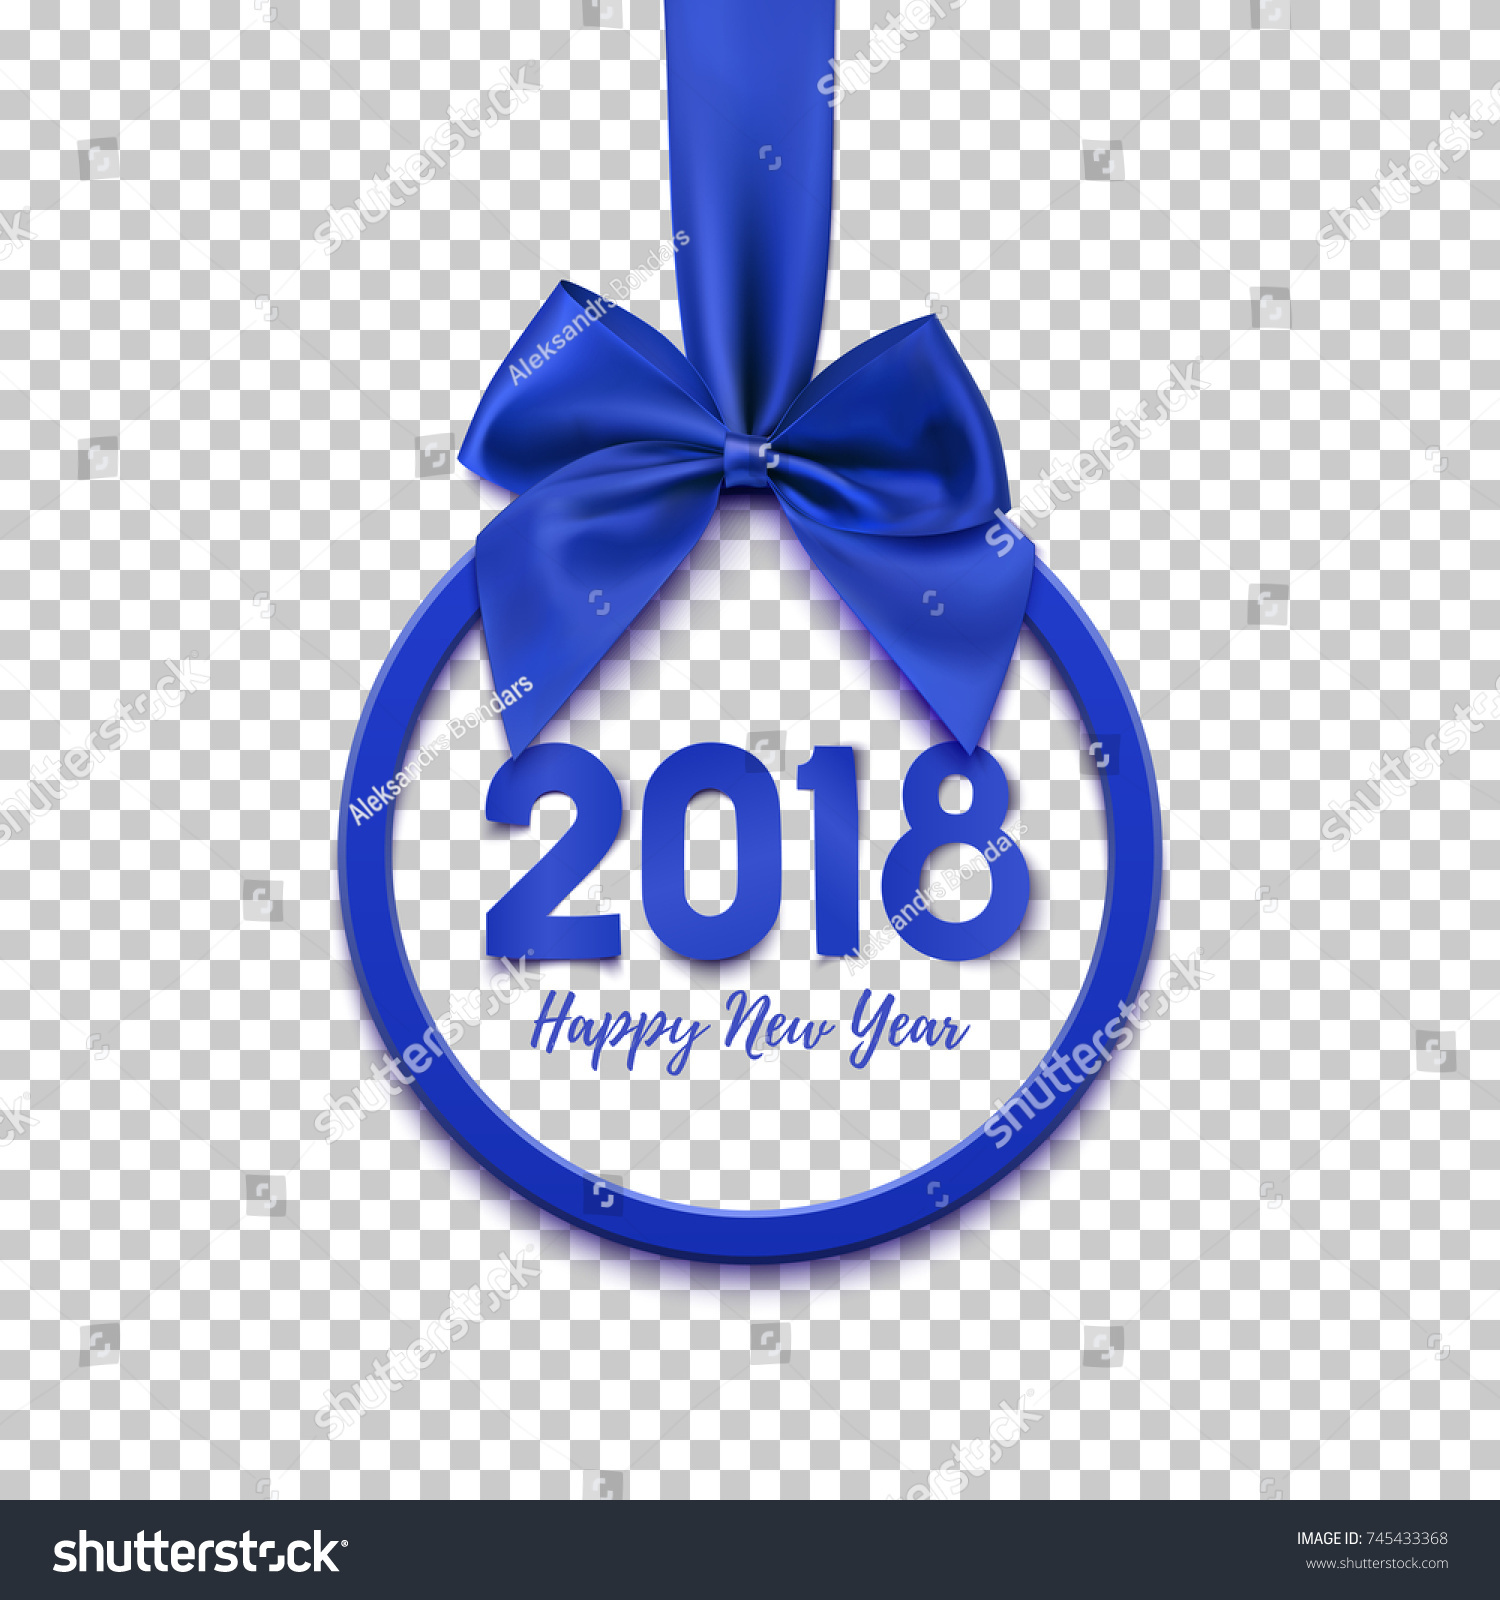 happy new year 2018 round banner with purple ribbon and bow on transparent background